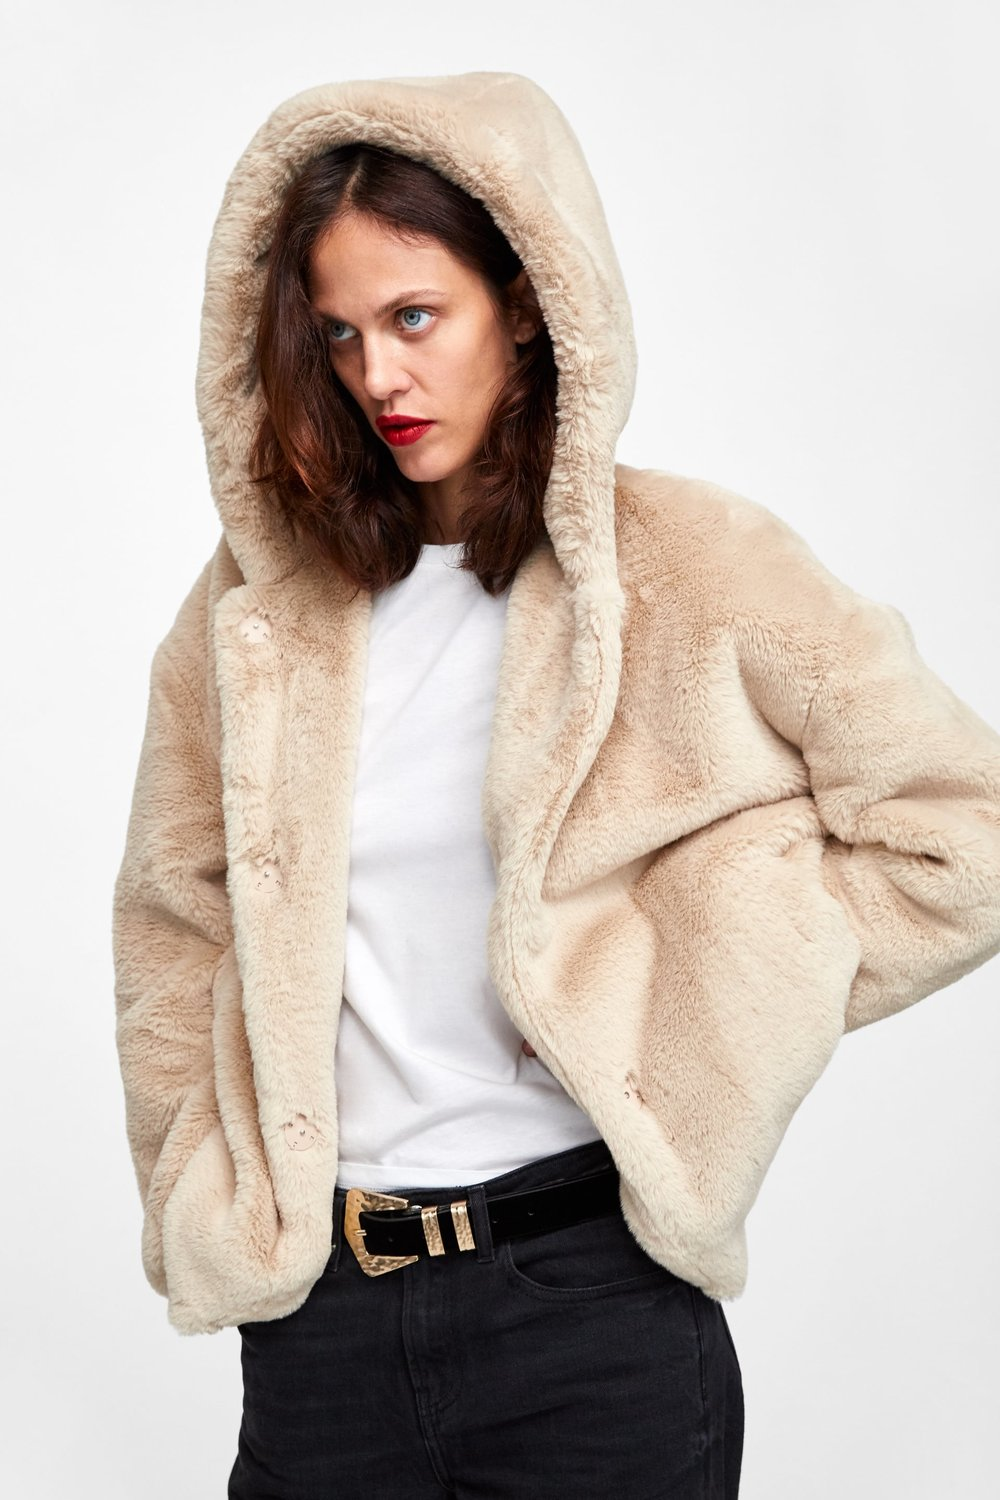 FAUX FUR JACKET - This jacket is so soft I can't stop touching it, ever! cozy I got it in both black and cream.